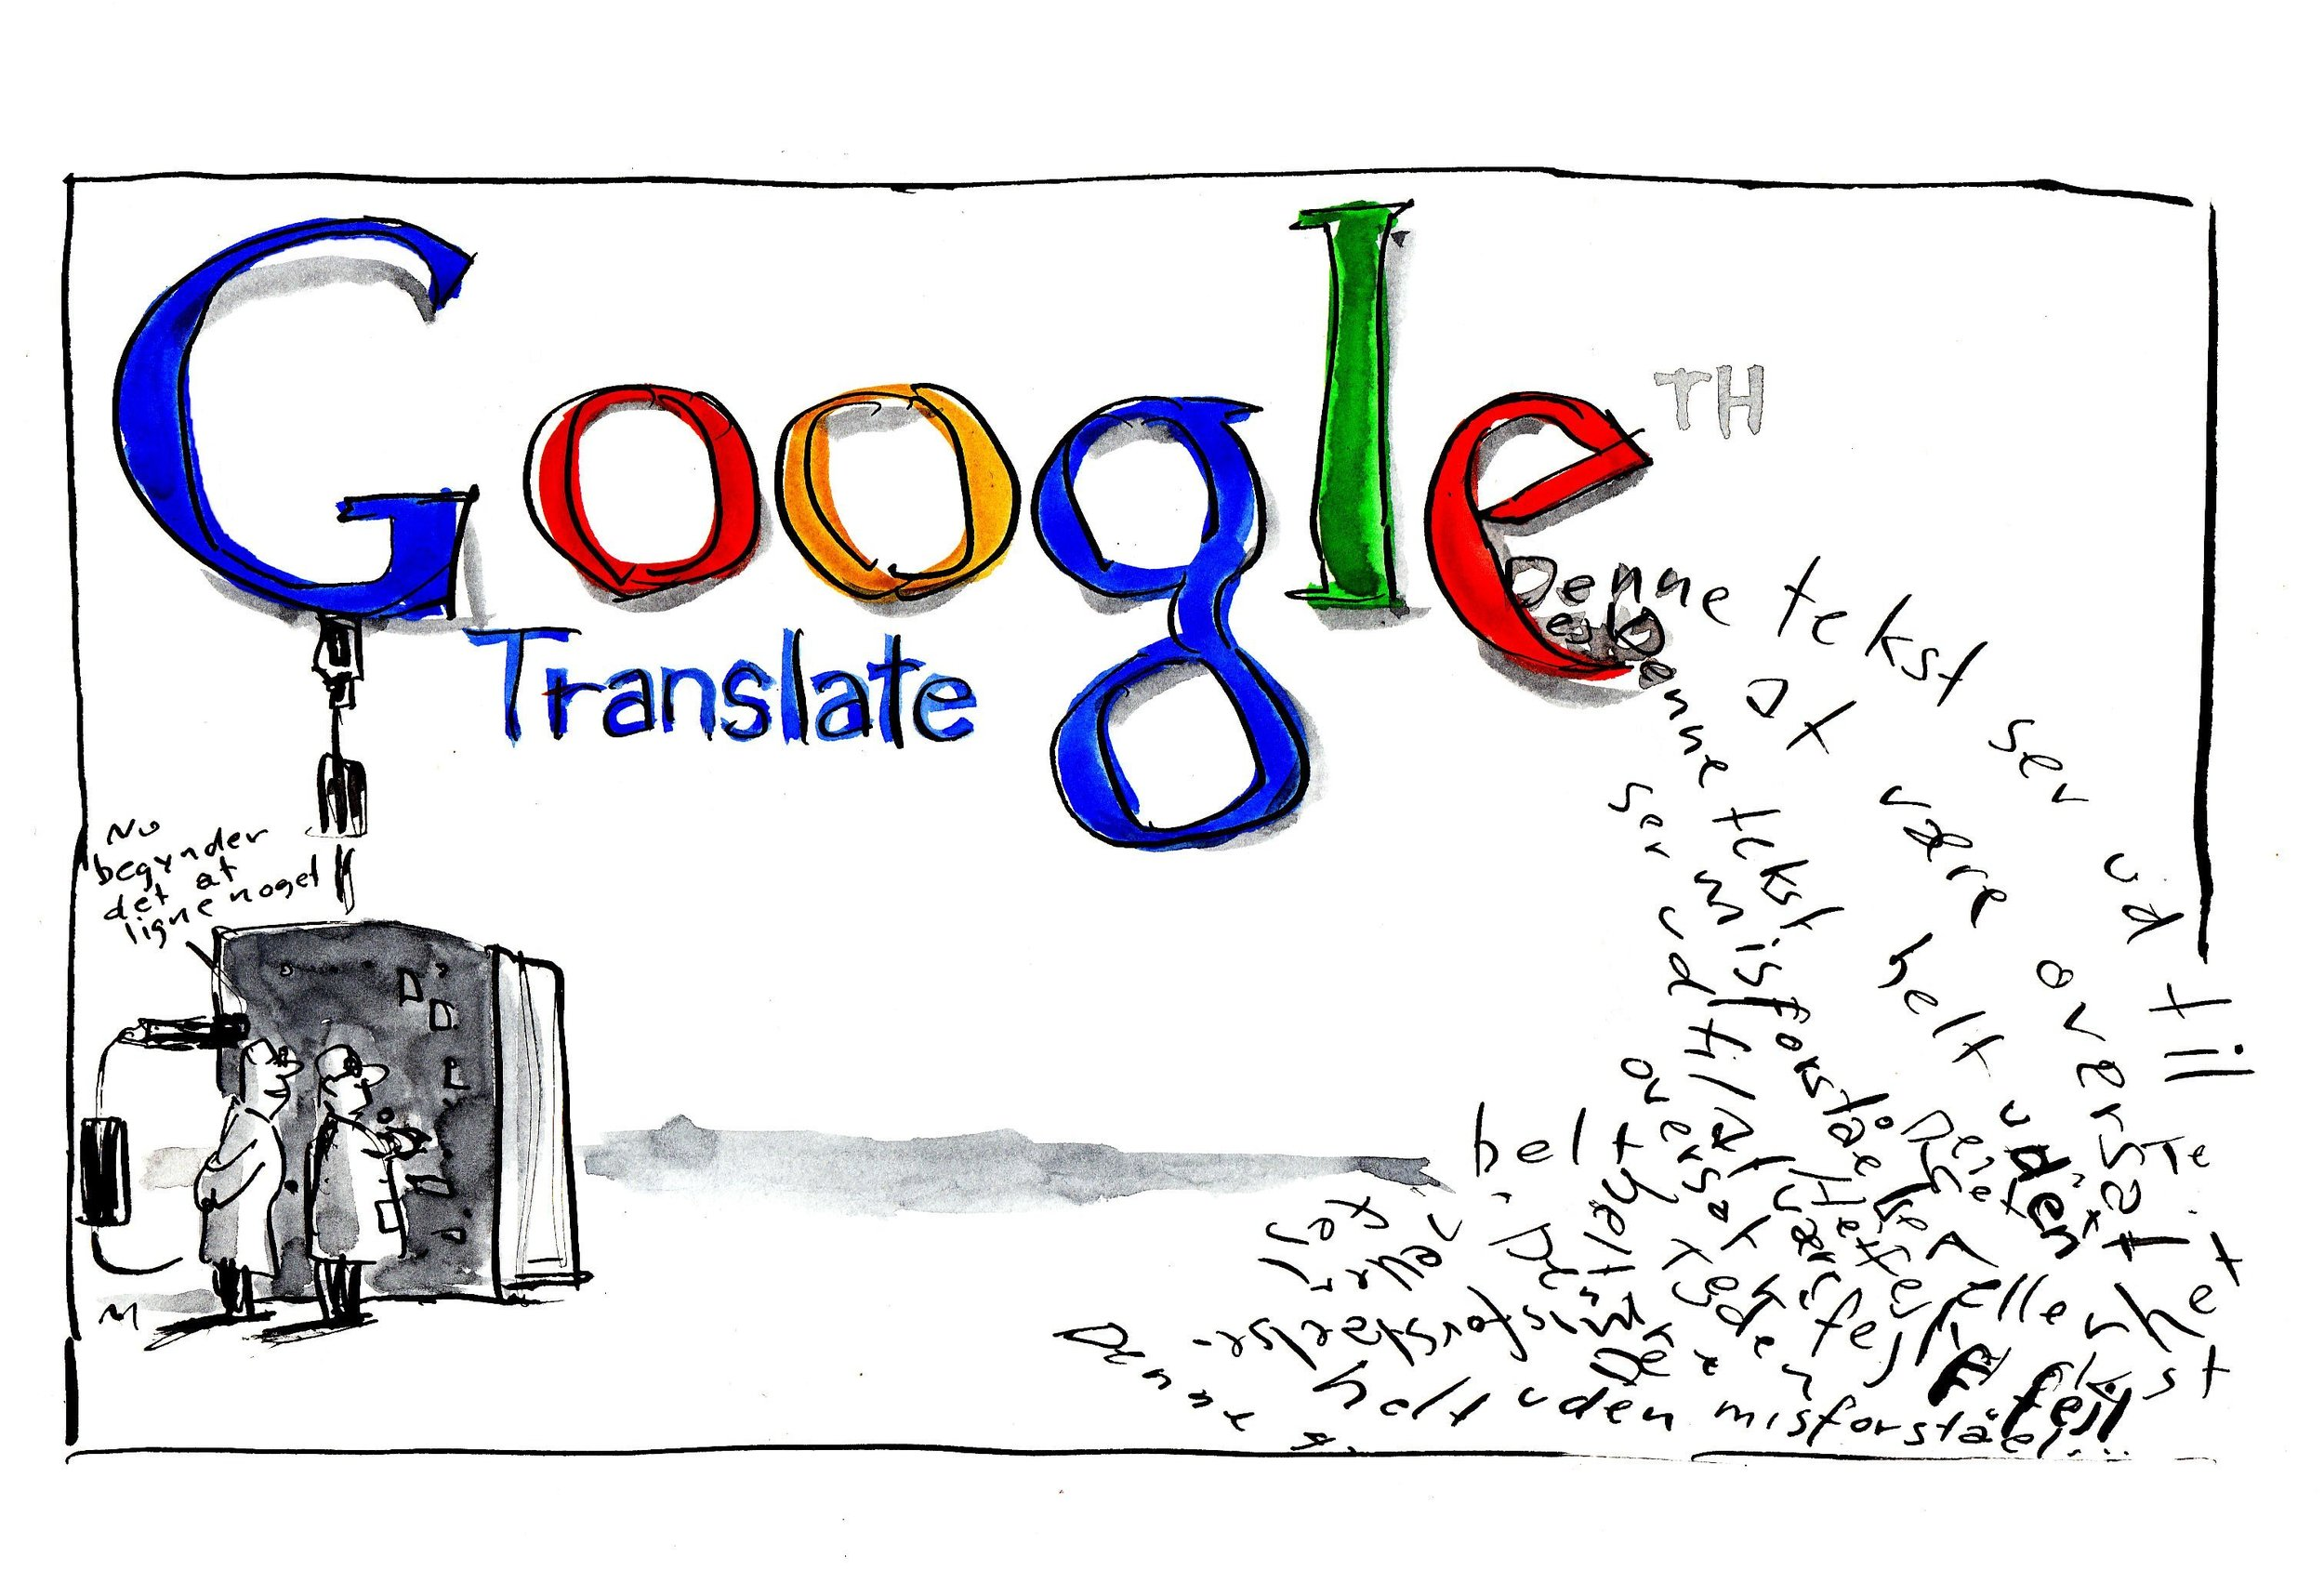 Google Translate not yet ready for medical communications